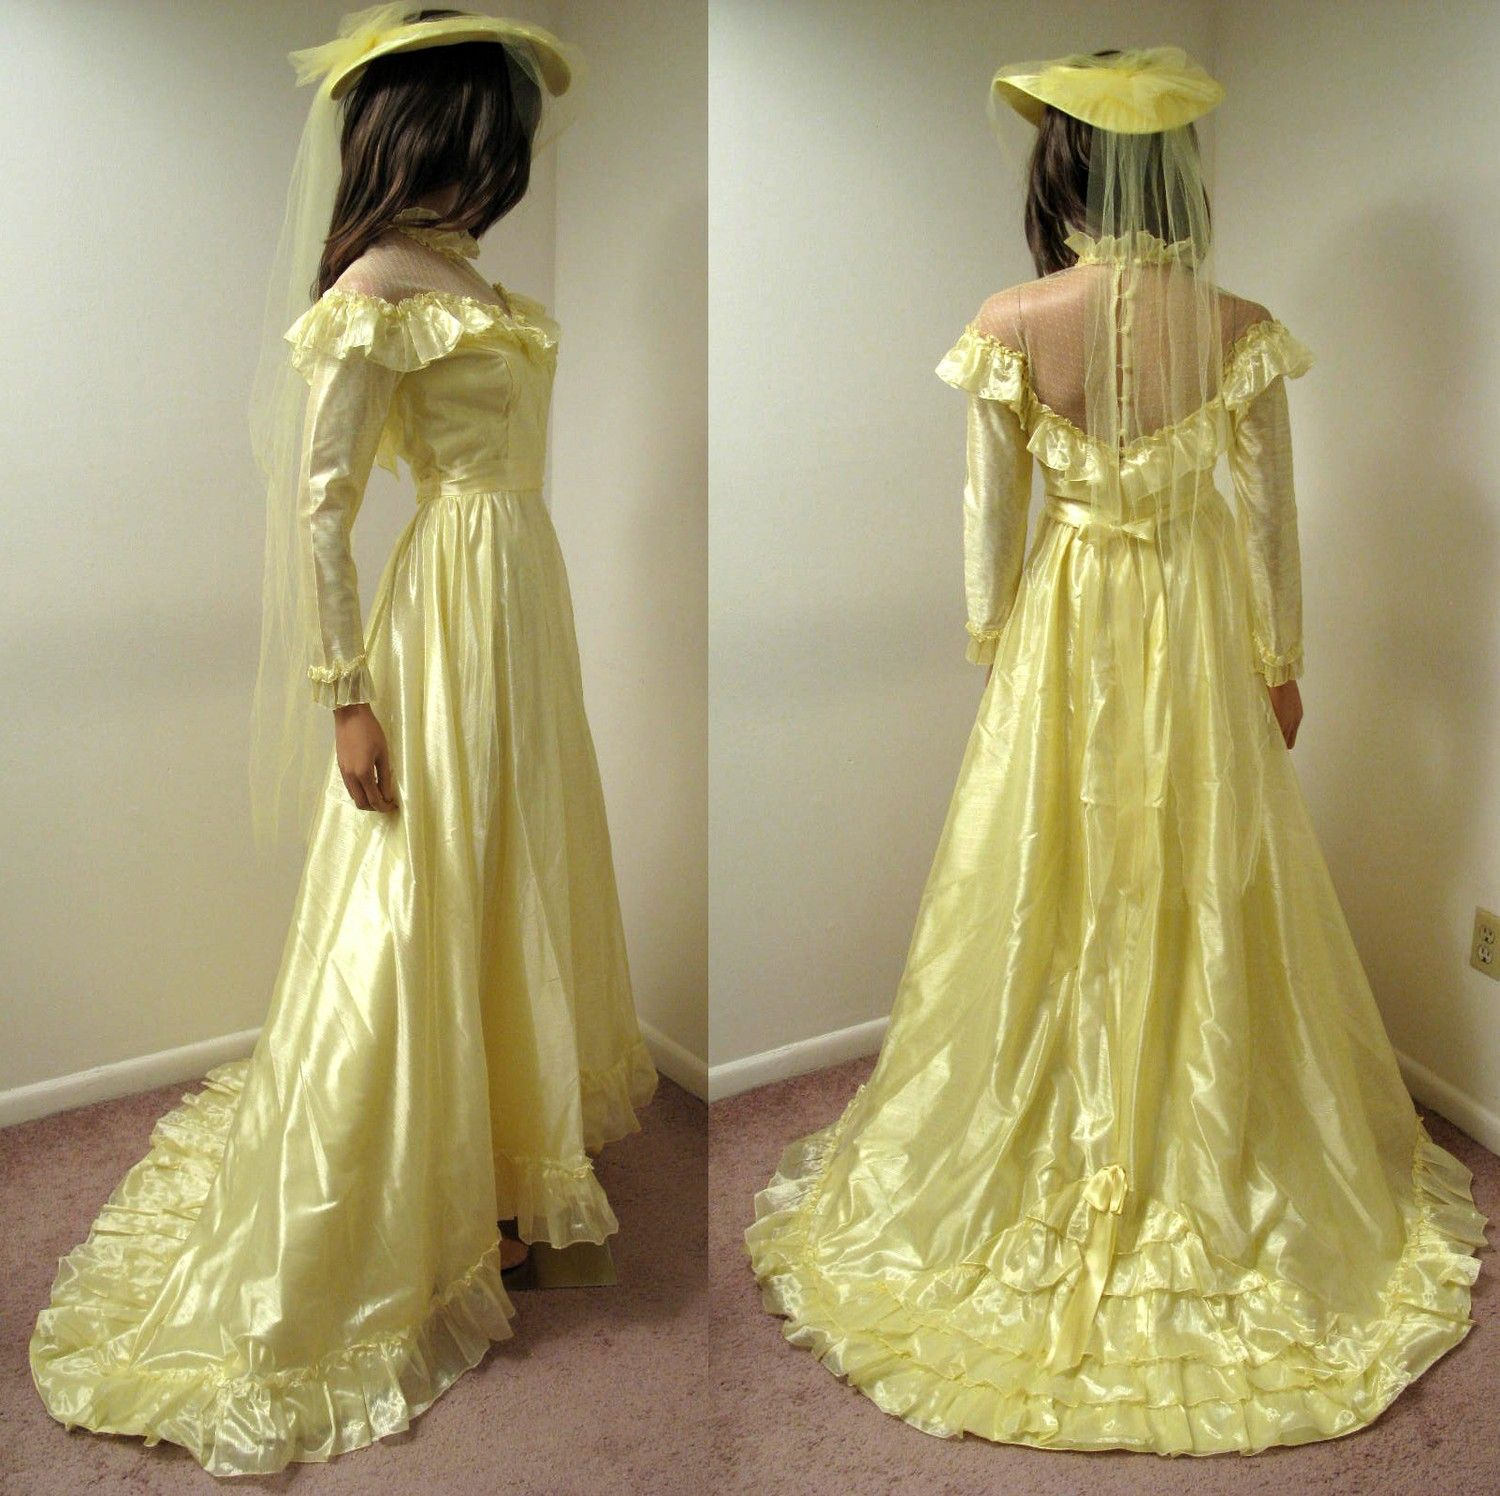 yellow wedding dress Cavendish Mechanics Louisanna outfit 3 I want this Steampunk Pinterest Victorian Wedding and Victorian era